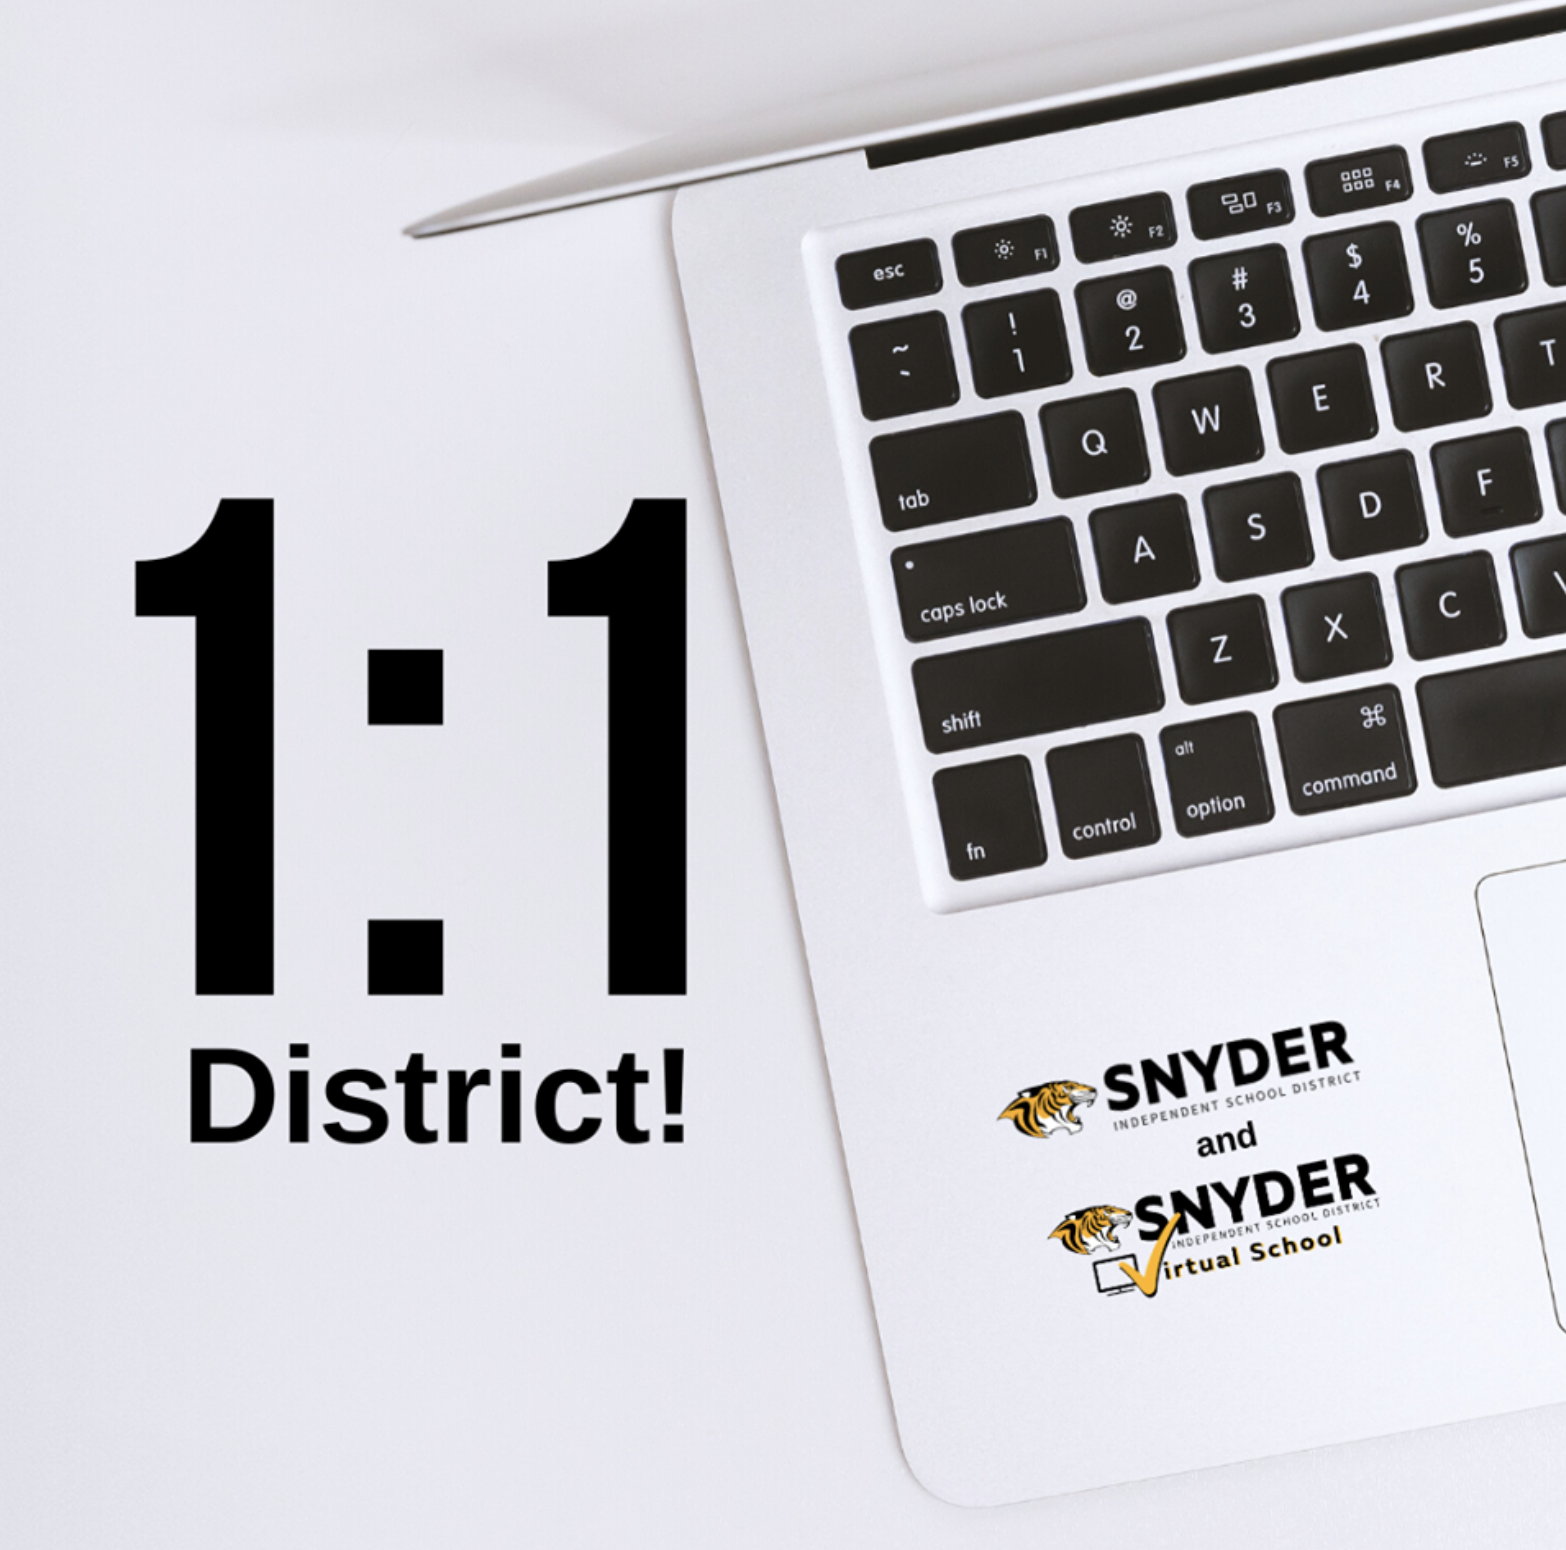 1:1 District